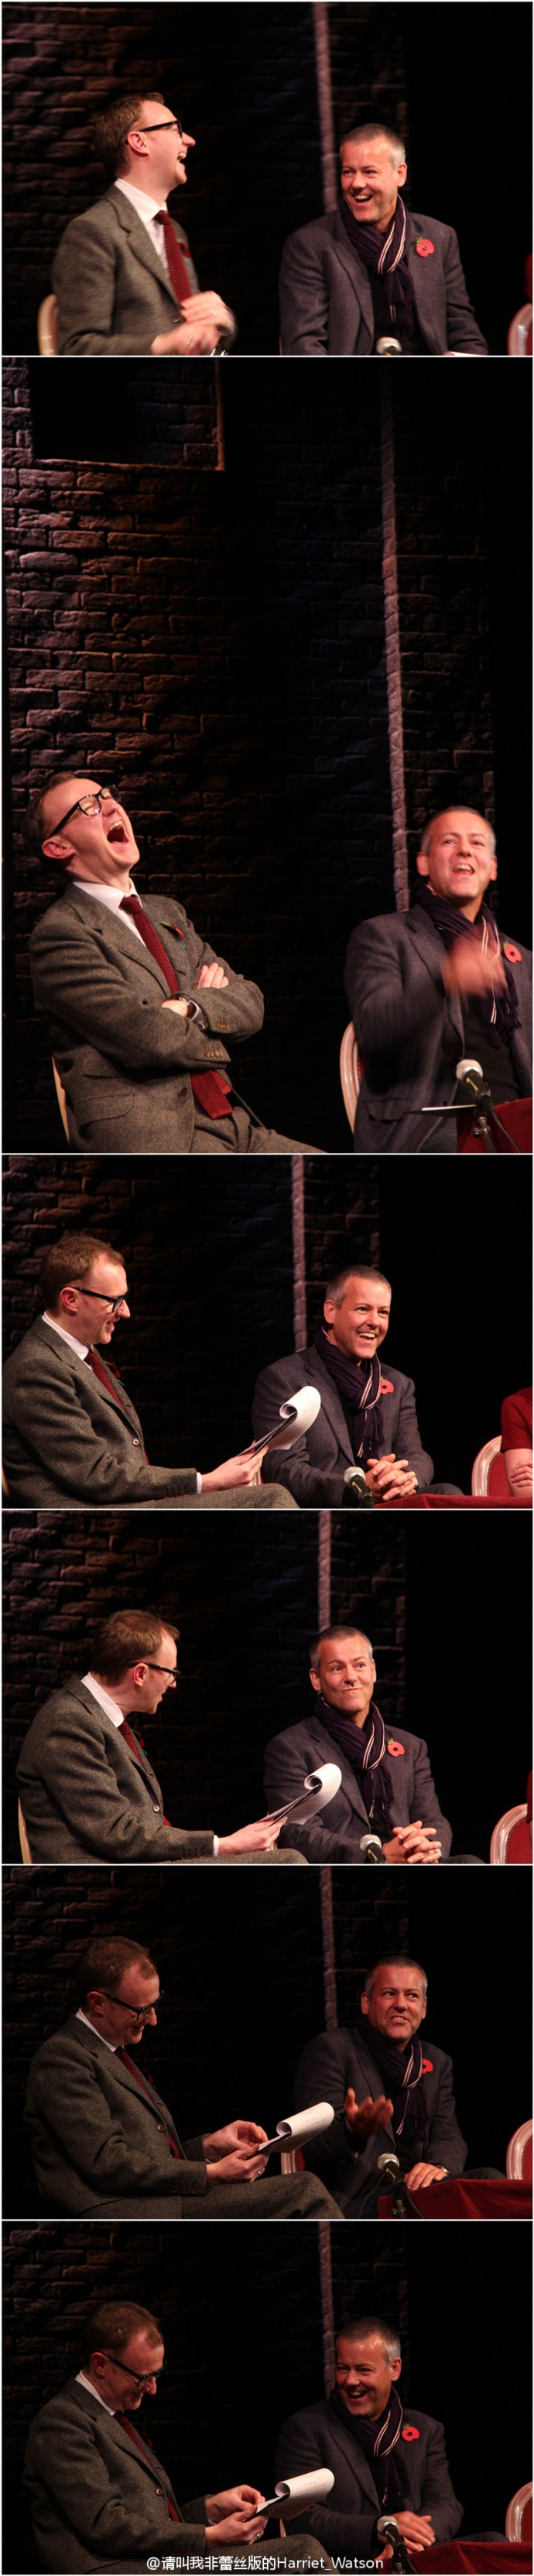 Rupert Graves Fans - Rupert and Mark on stage together?! Yes, with photo!